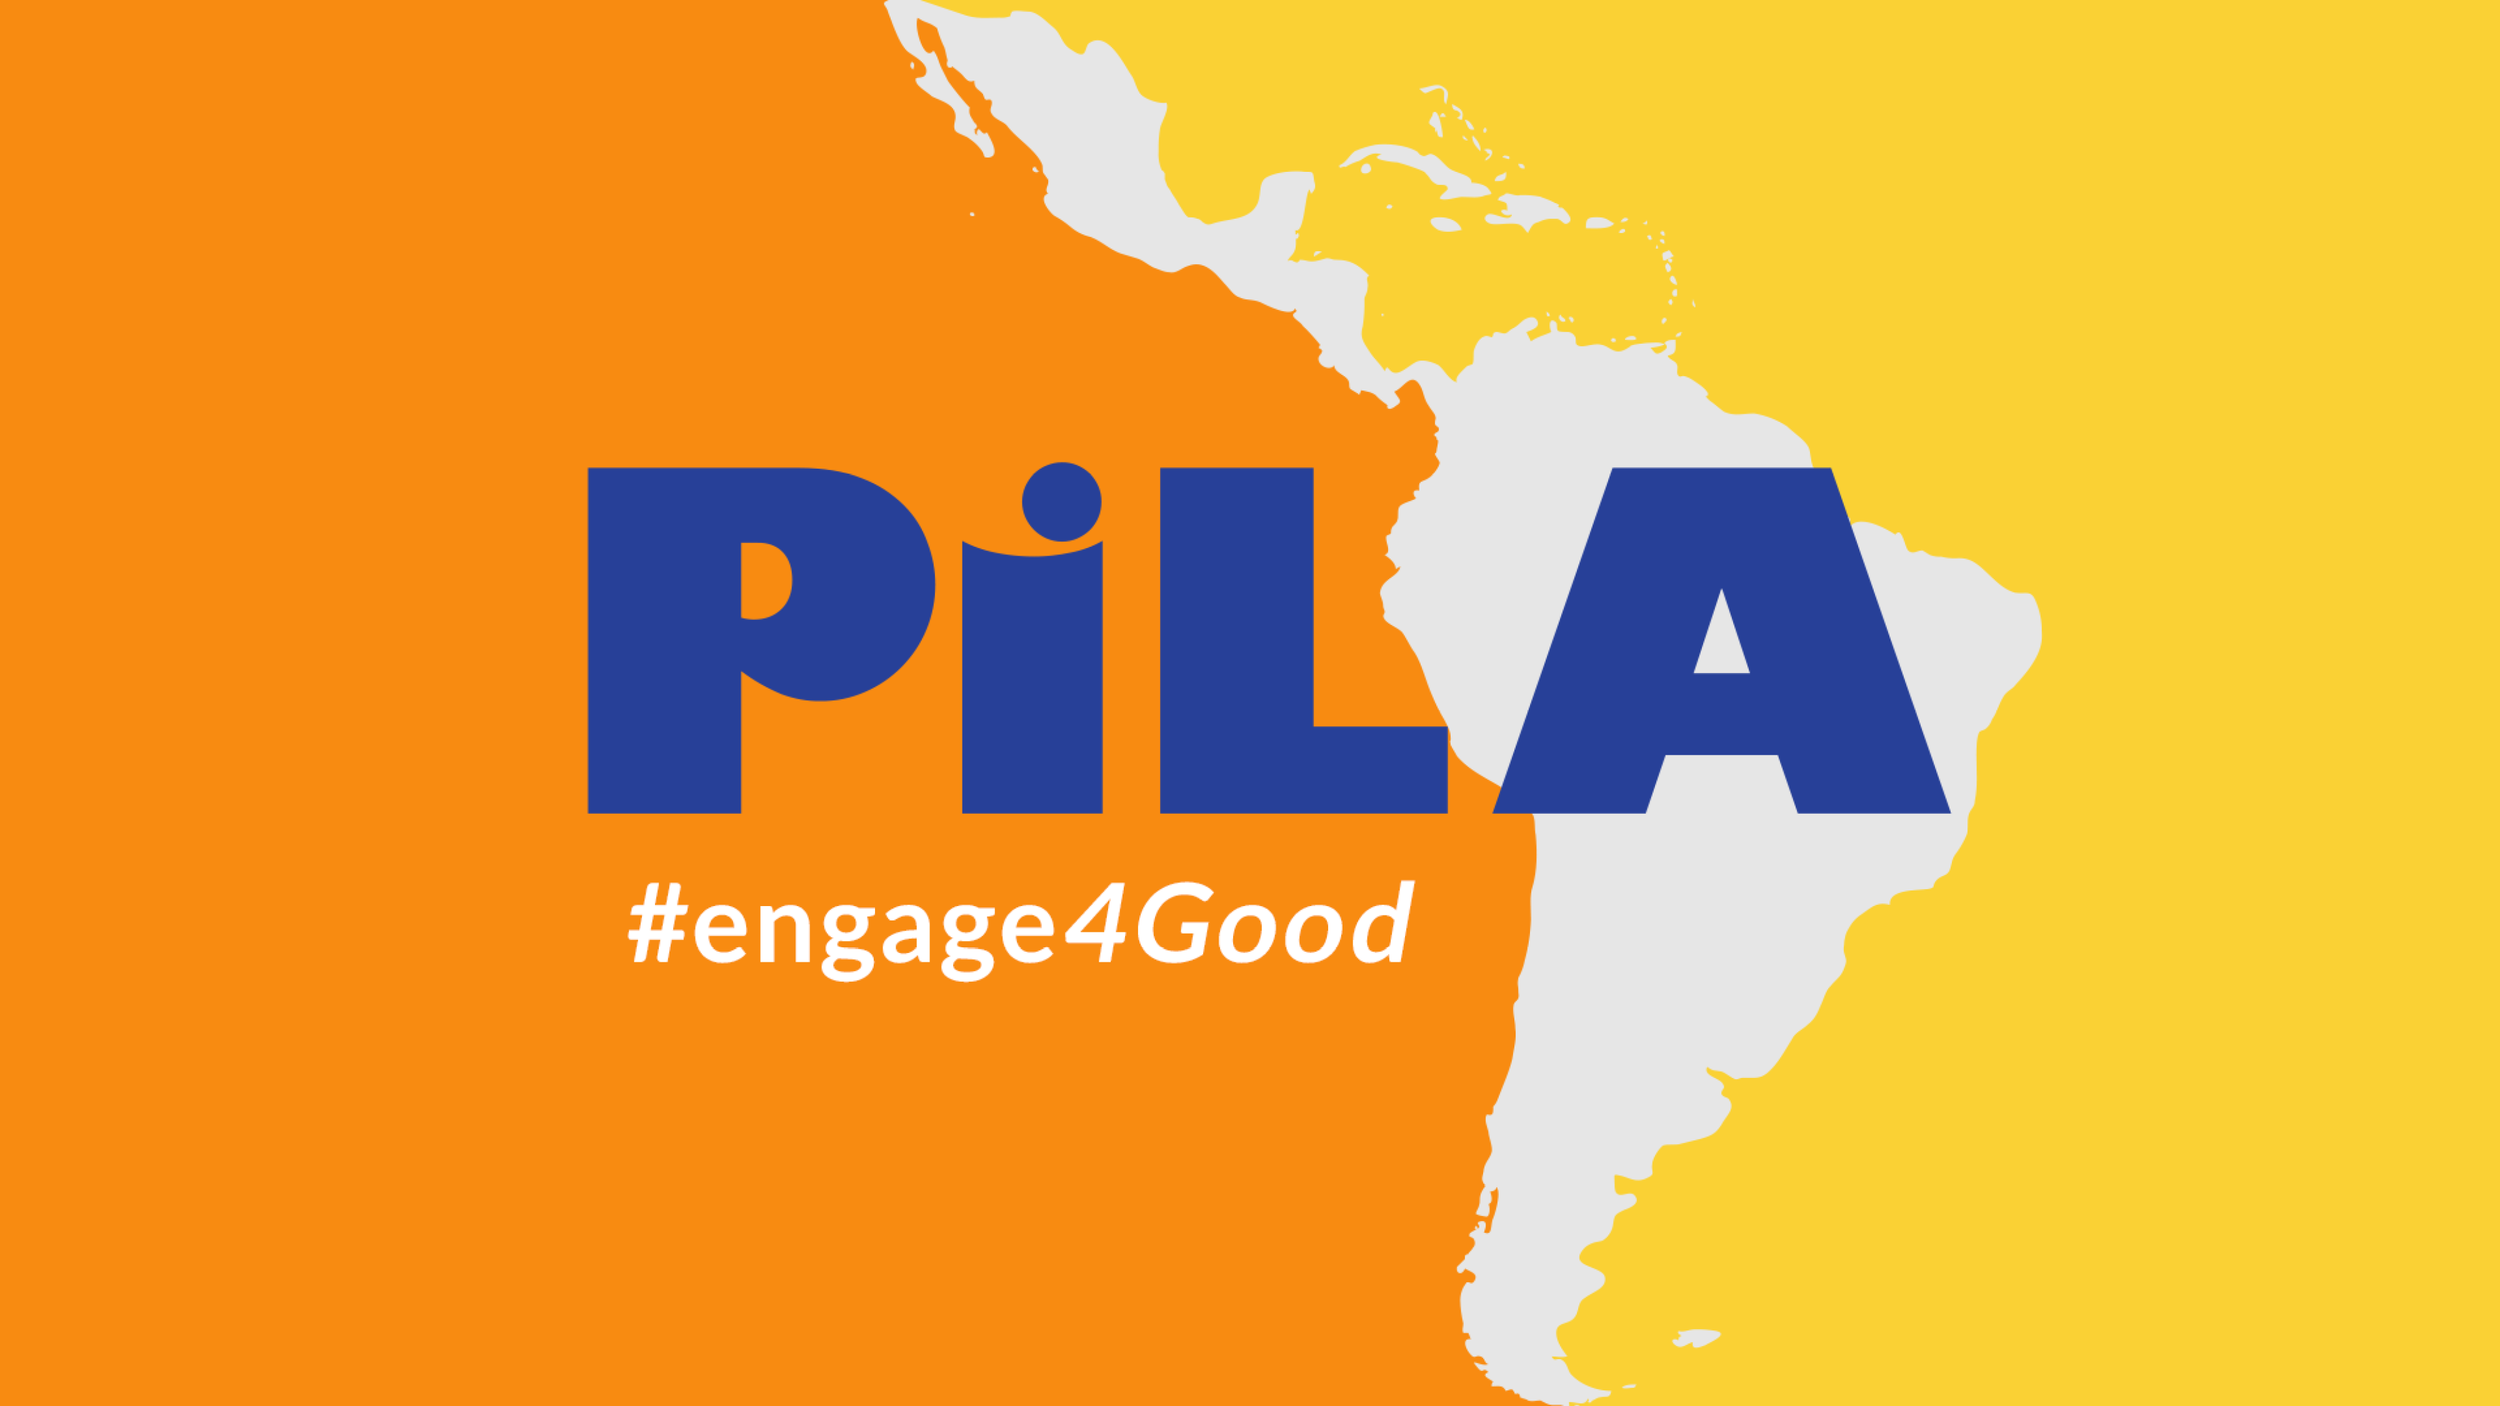 Developing stories that inspire connection and help PiLA promote the impactful good they do.